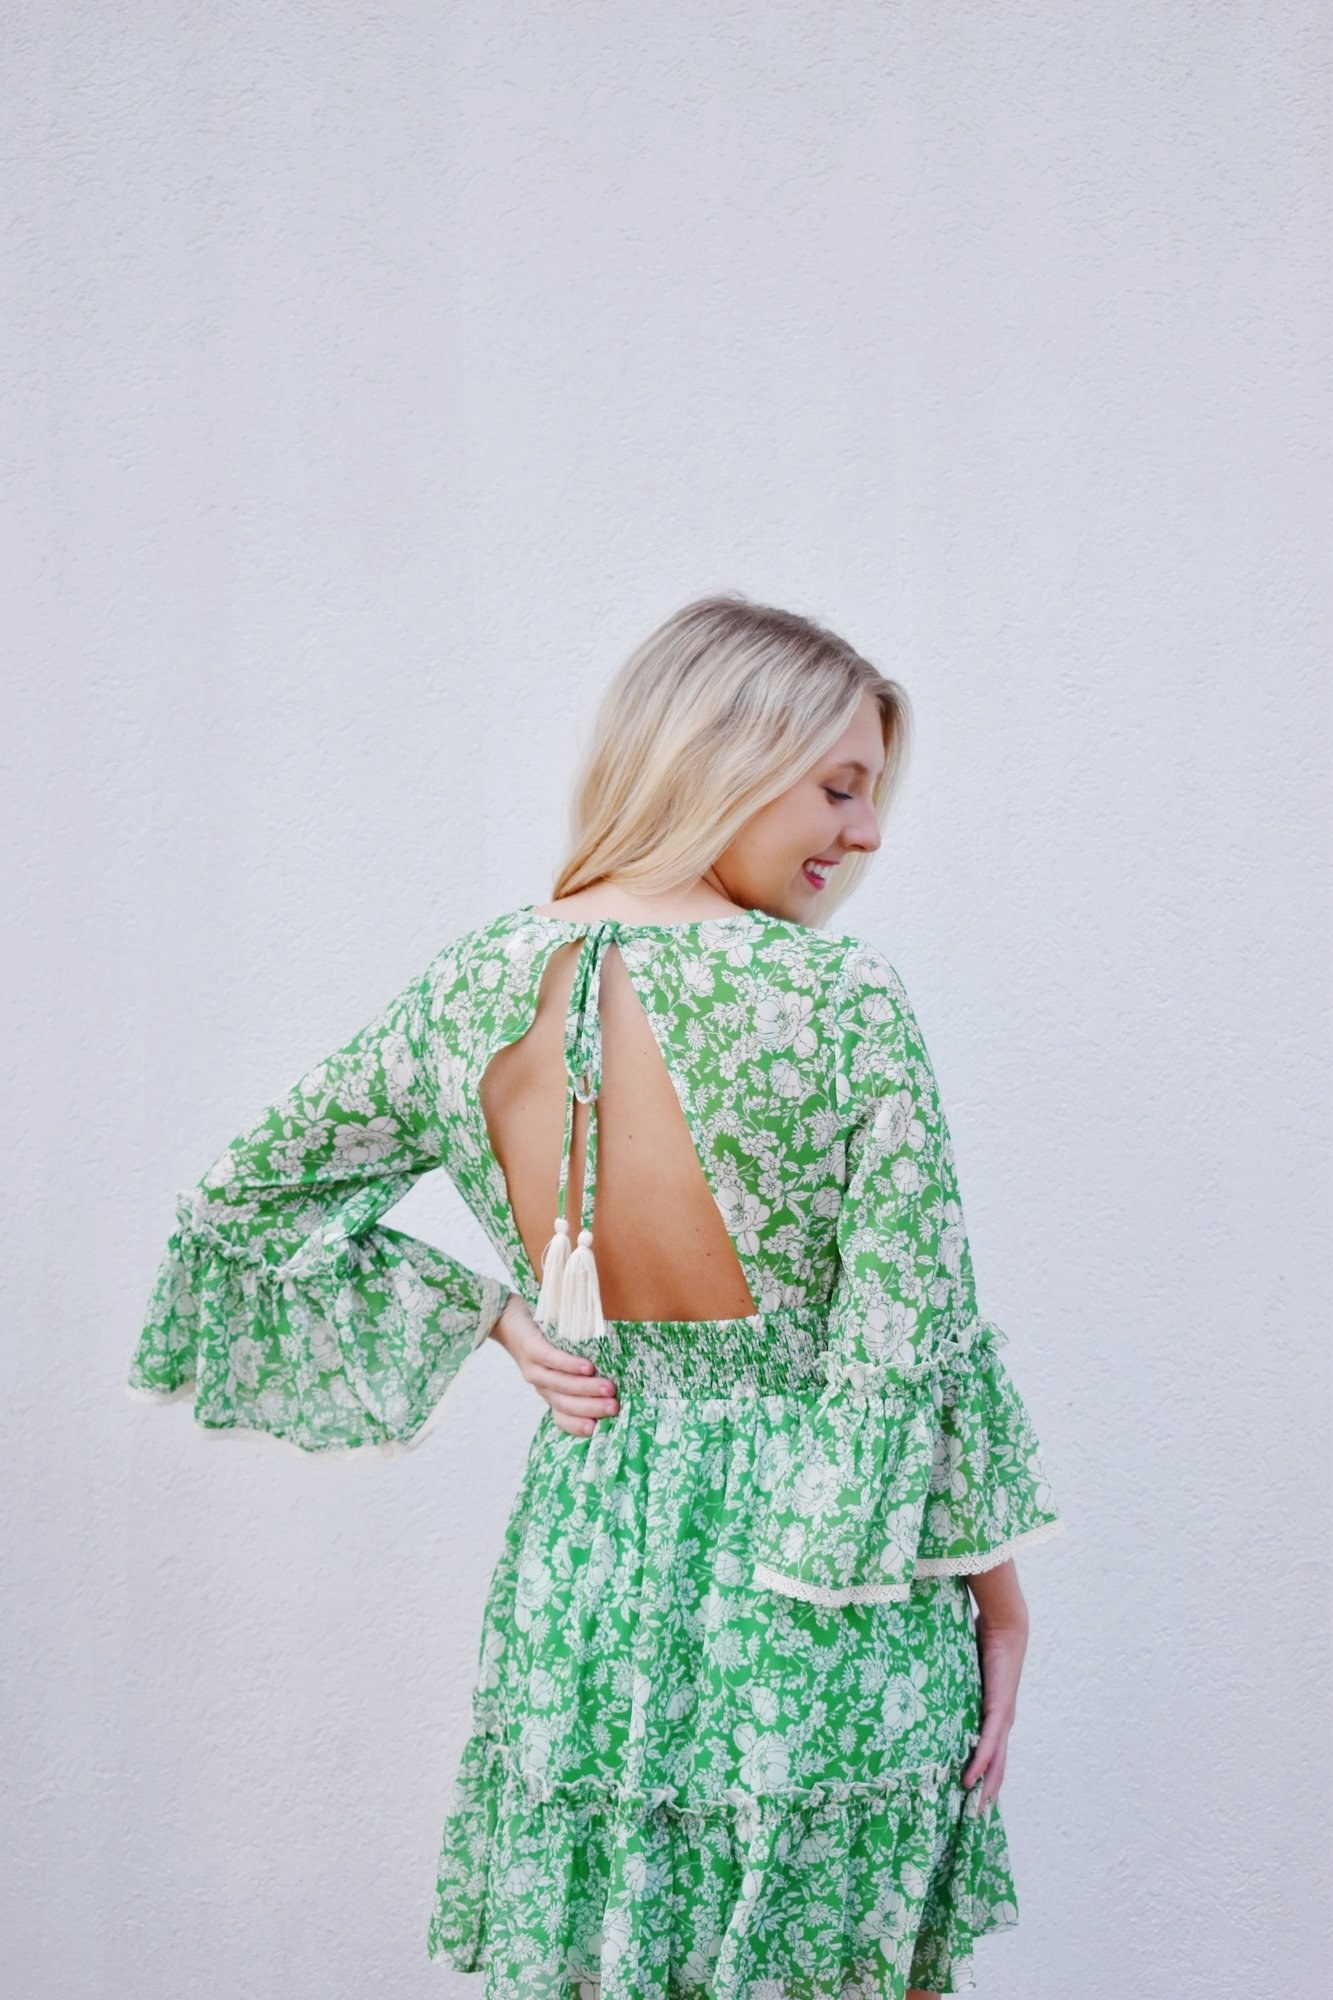 model wearing bell sleeve dress with cutout in the back